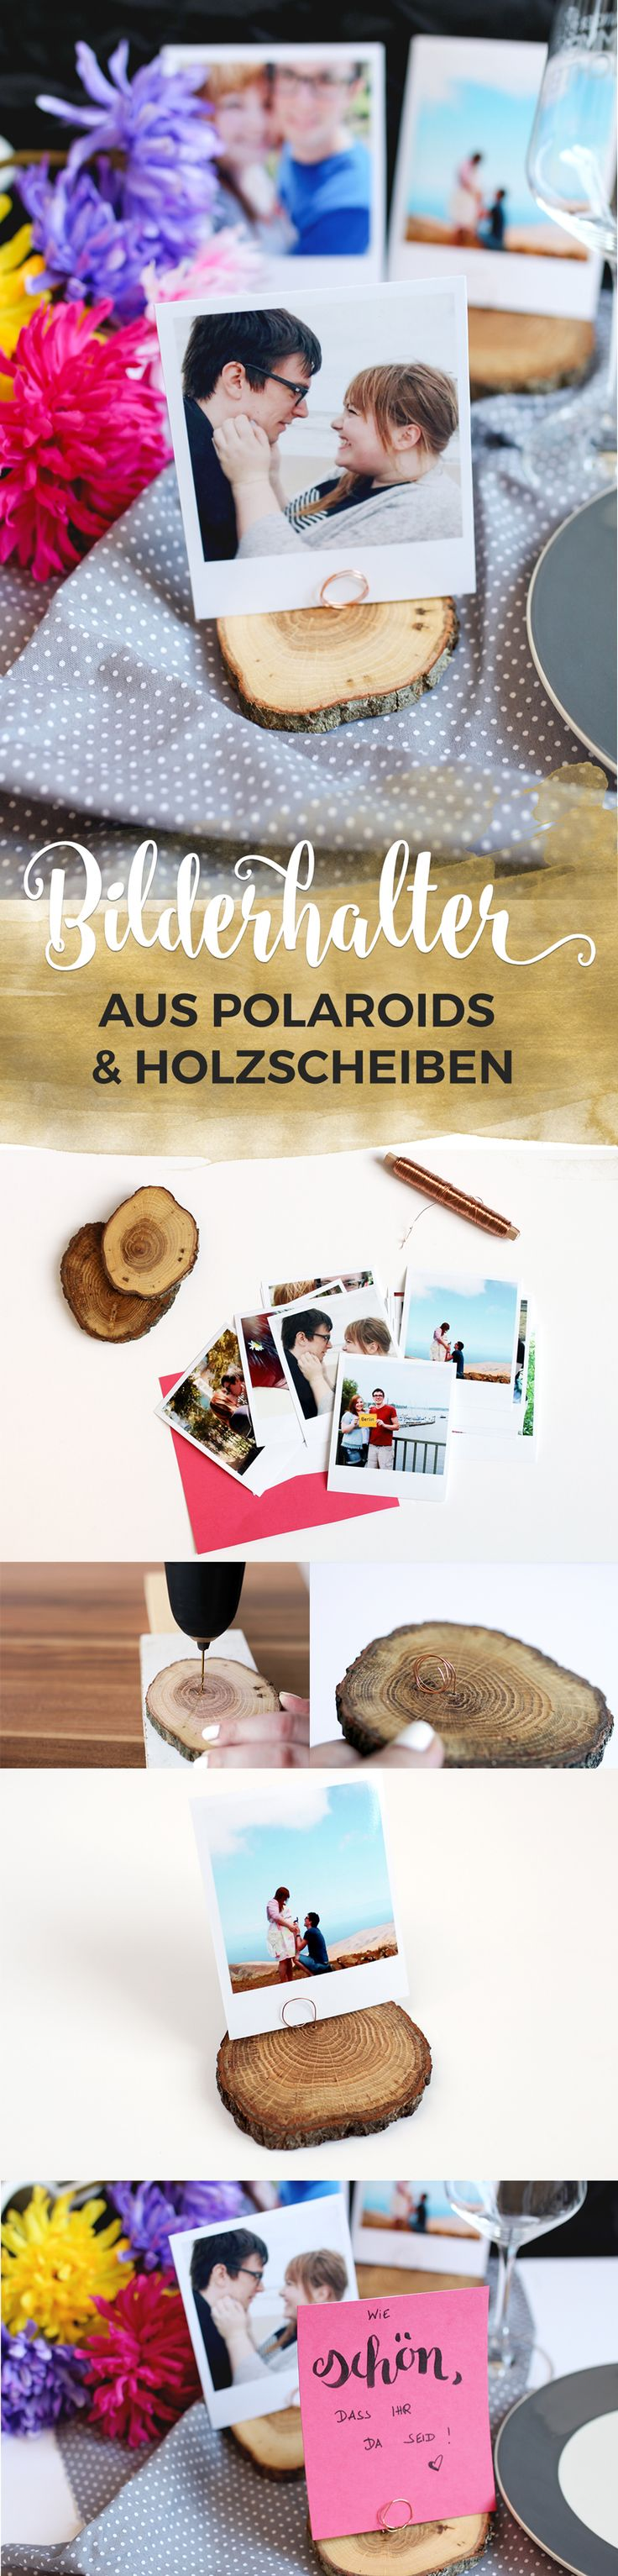 Tischdekoration für die Hochzeitsfeier - DIY Tischkartenhalter mit Polaroid-Foto und Holzscheibe // DIY tutorial for a wooden disc photo holder for your wedding